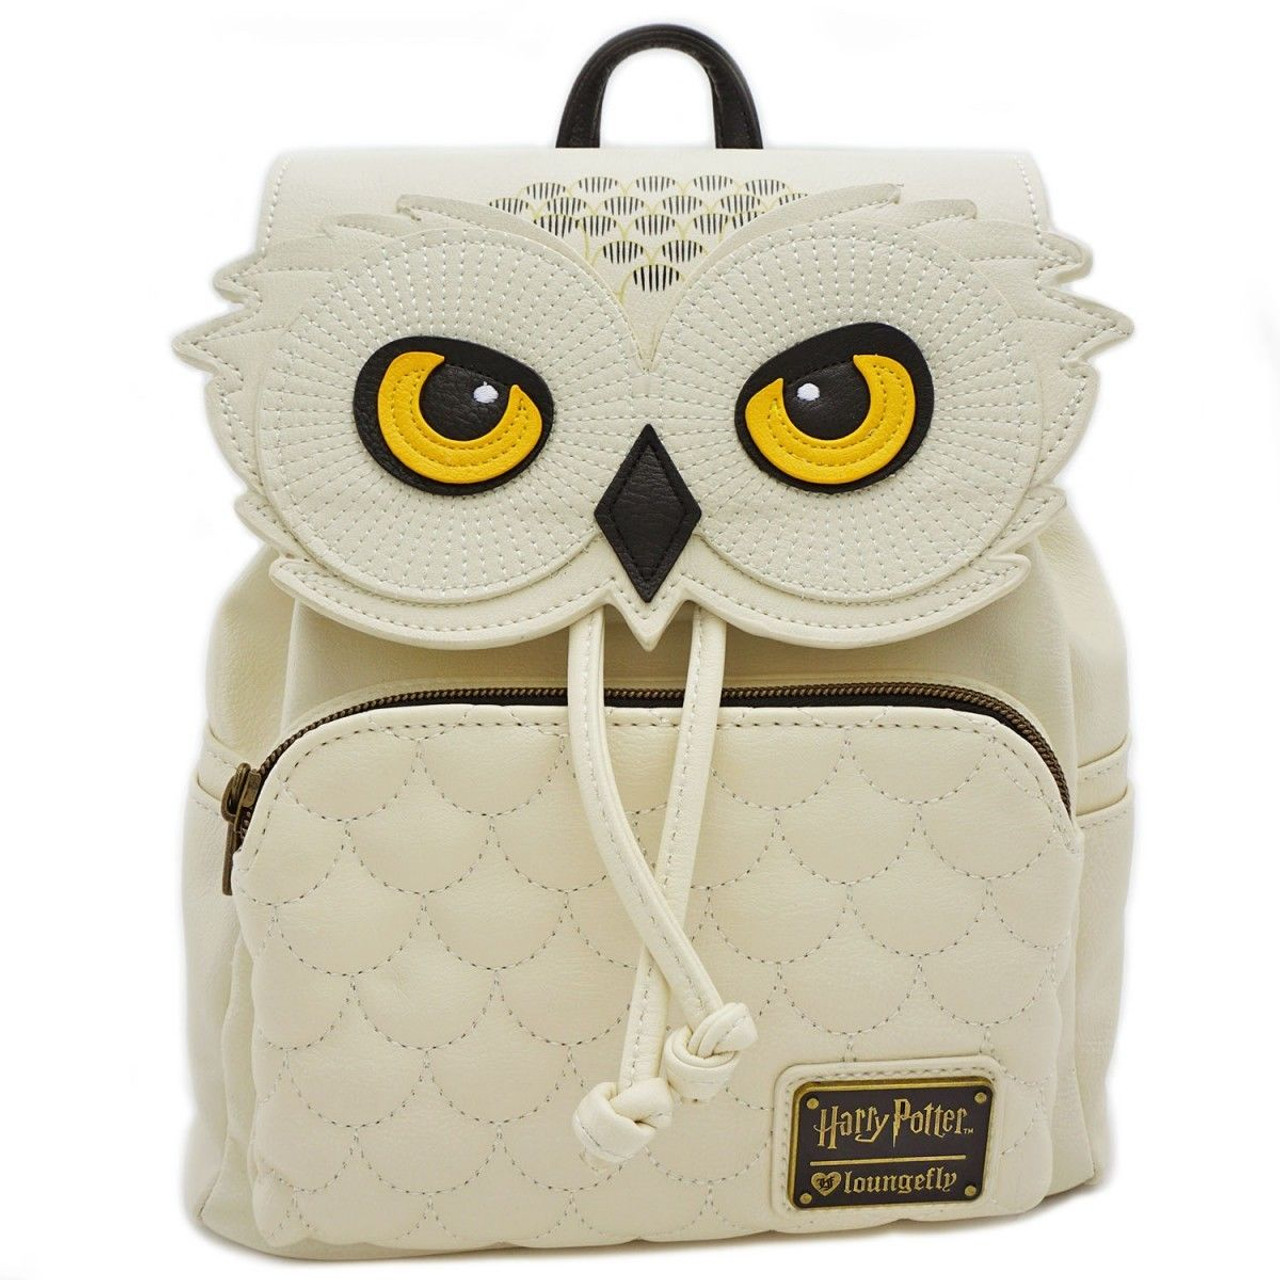 7c39e54feb5 Loungefly Harry Potter Hedwig Snow Owl Mini Faux Leather Bag Backpack  HPBK0005 - Fearless Apparel